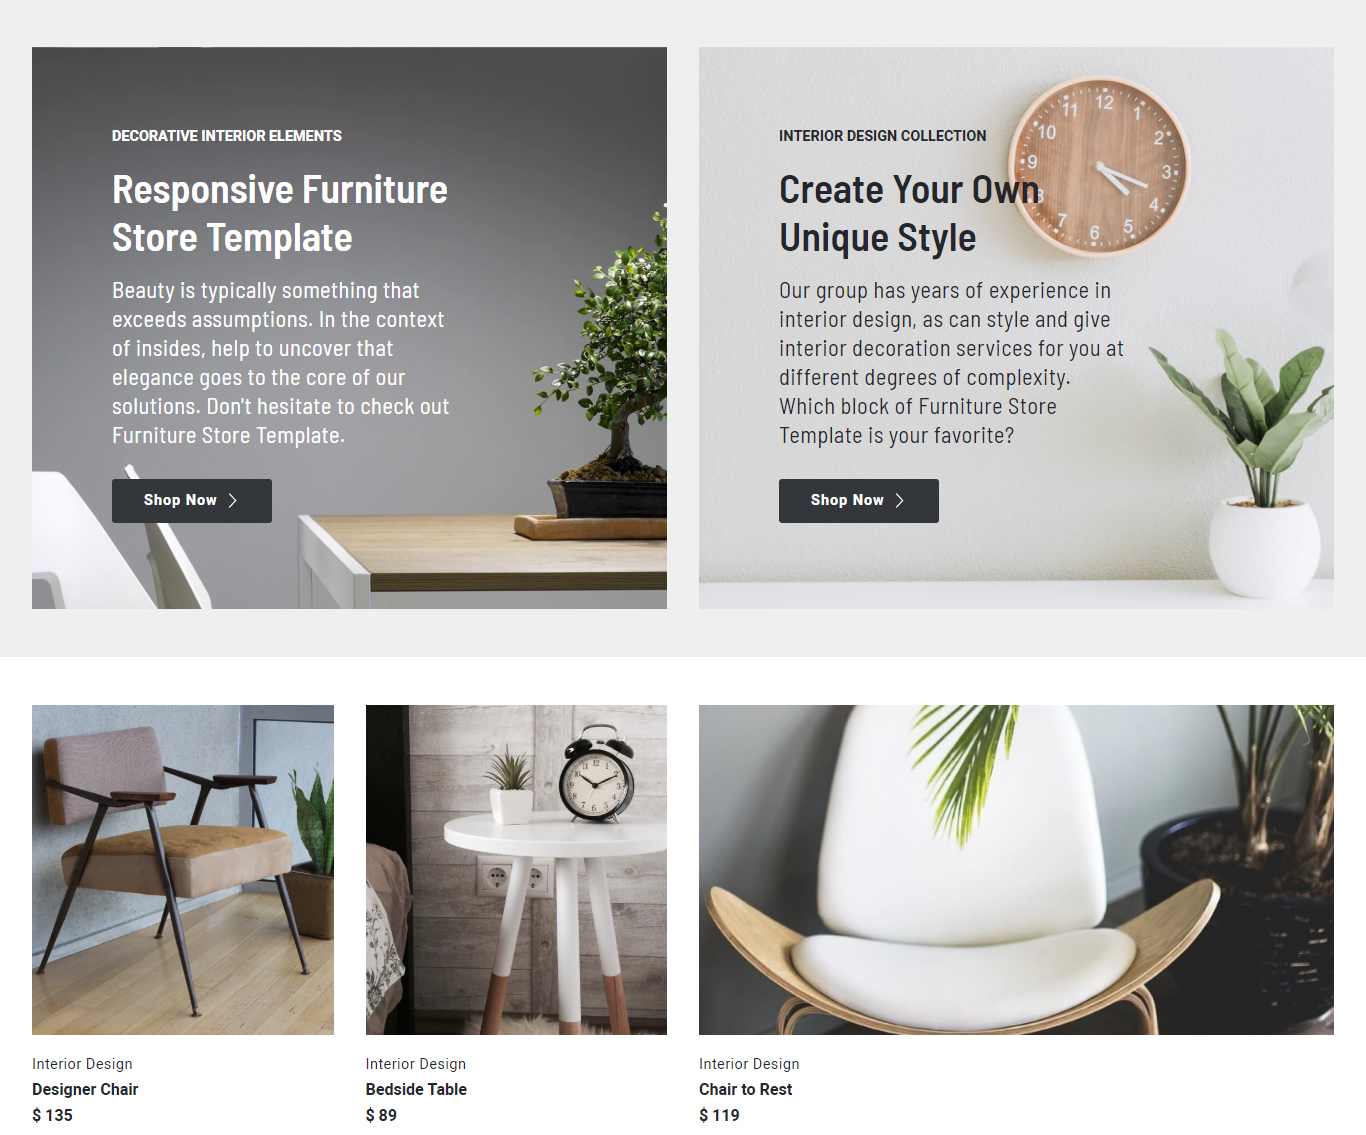 Responsive Furniture Store Template